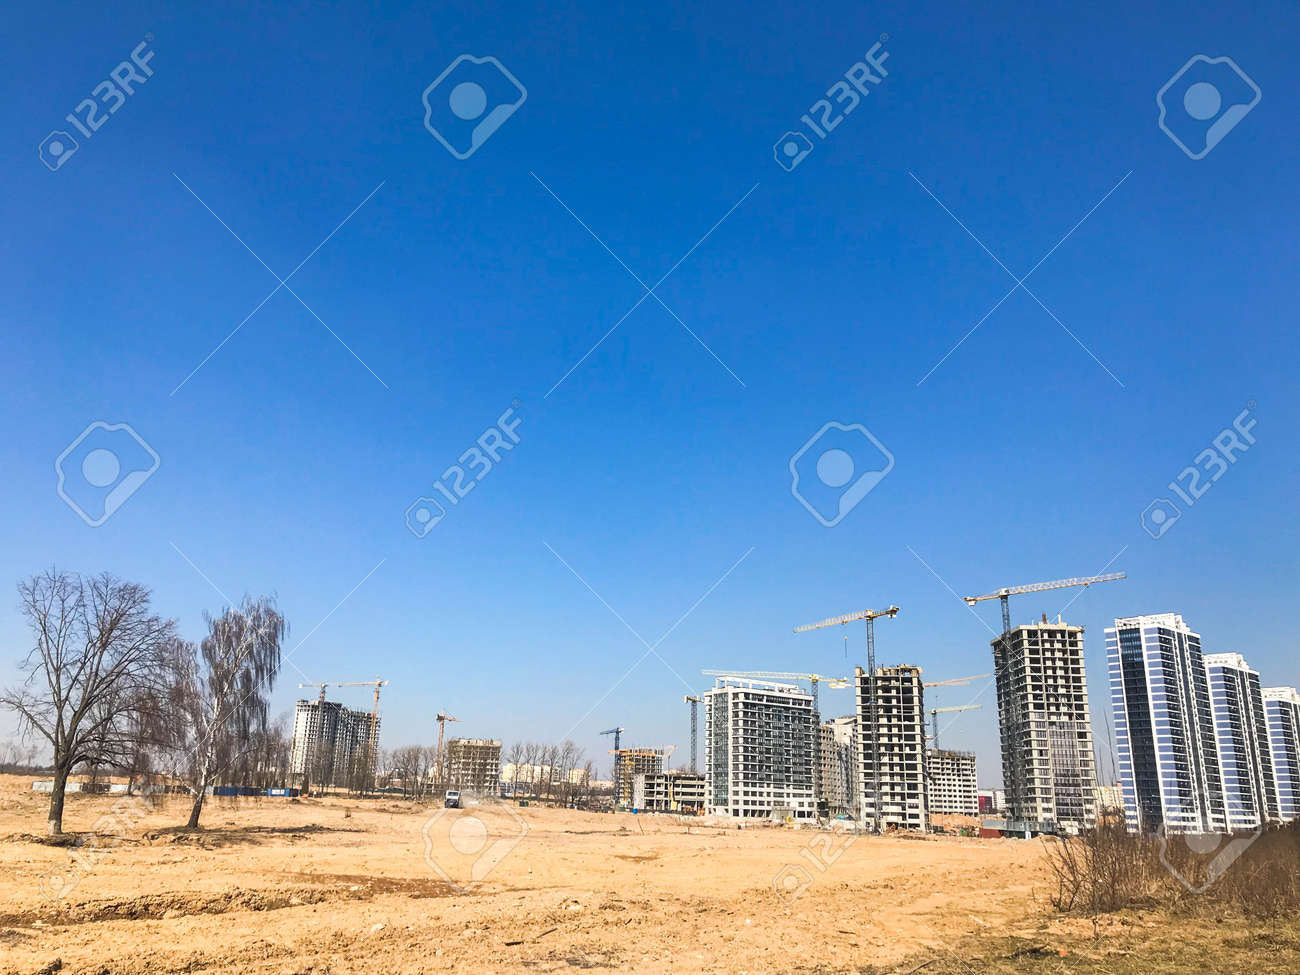 Building with the help of construction cranes of high reinforced concrete, panel, cast-frame, frame-block houses, buildings, skyscrapers, new buildings on the background of sandy land. - 120667640